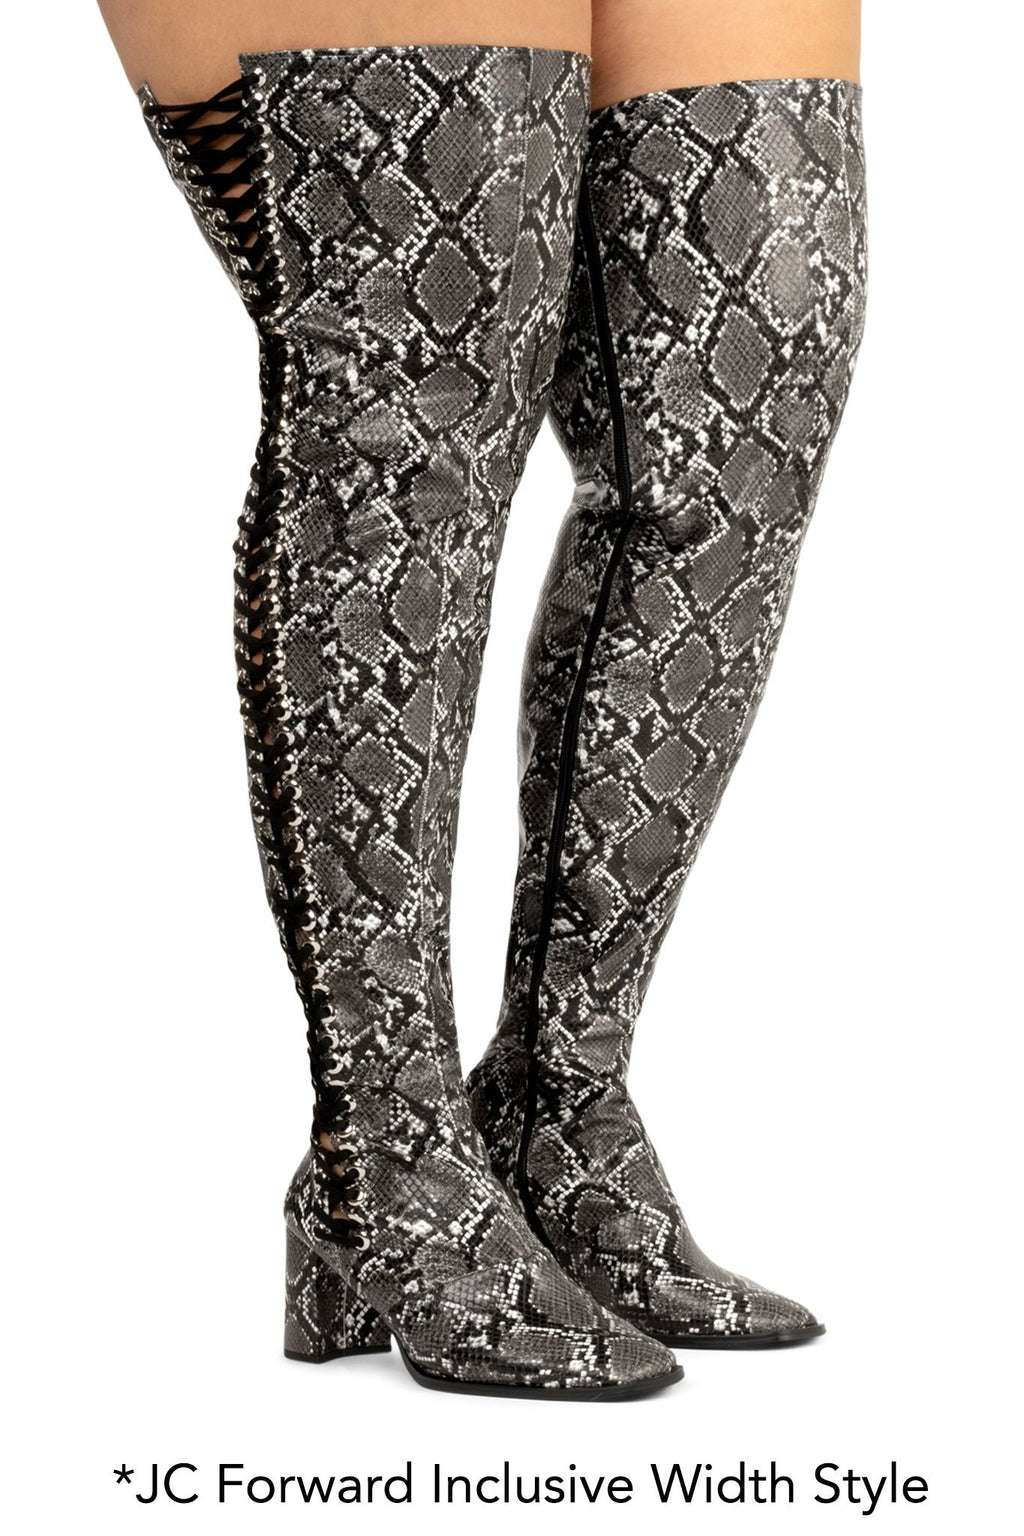 HEEL-FLIP Boot RB Grey Black Snake 6W